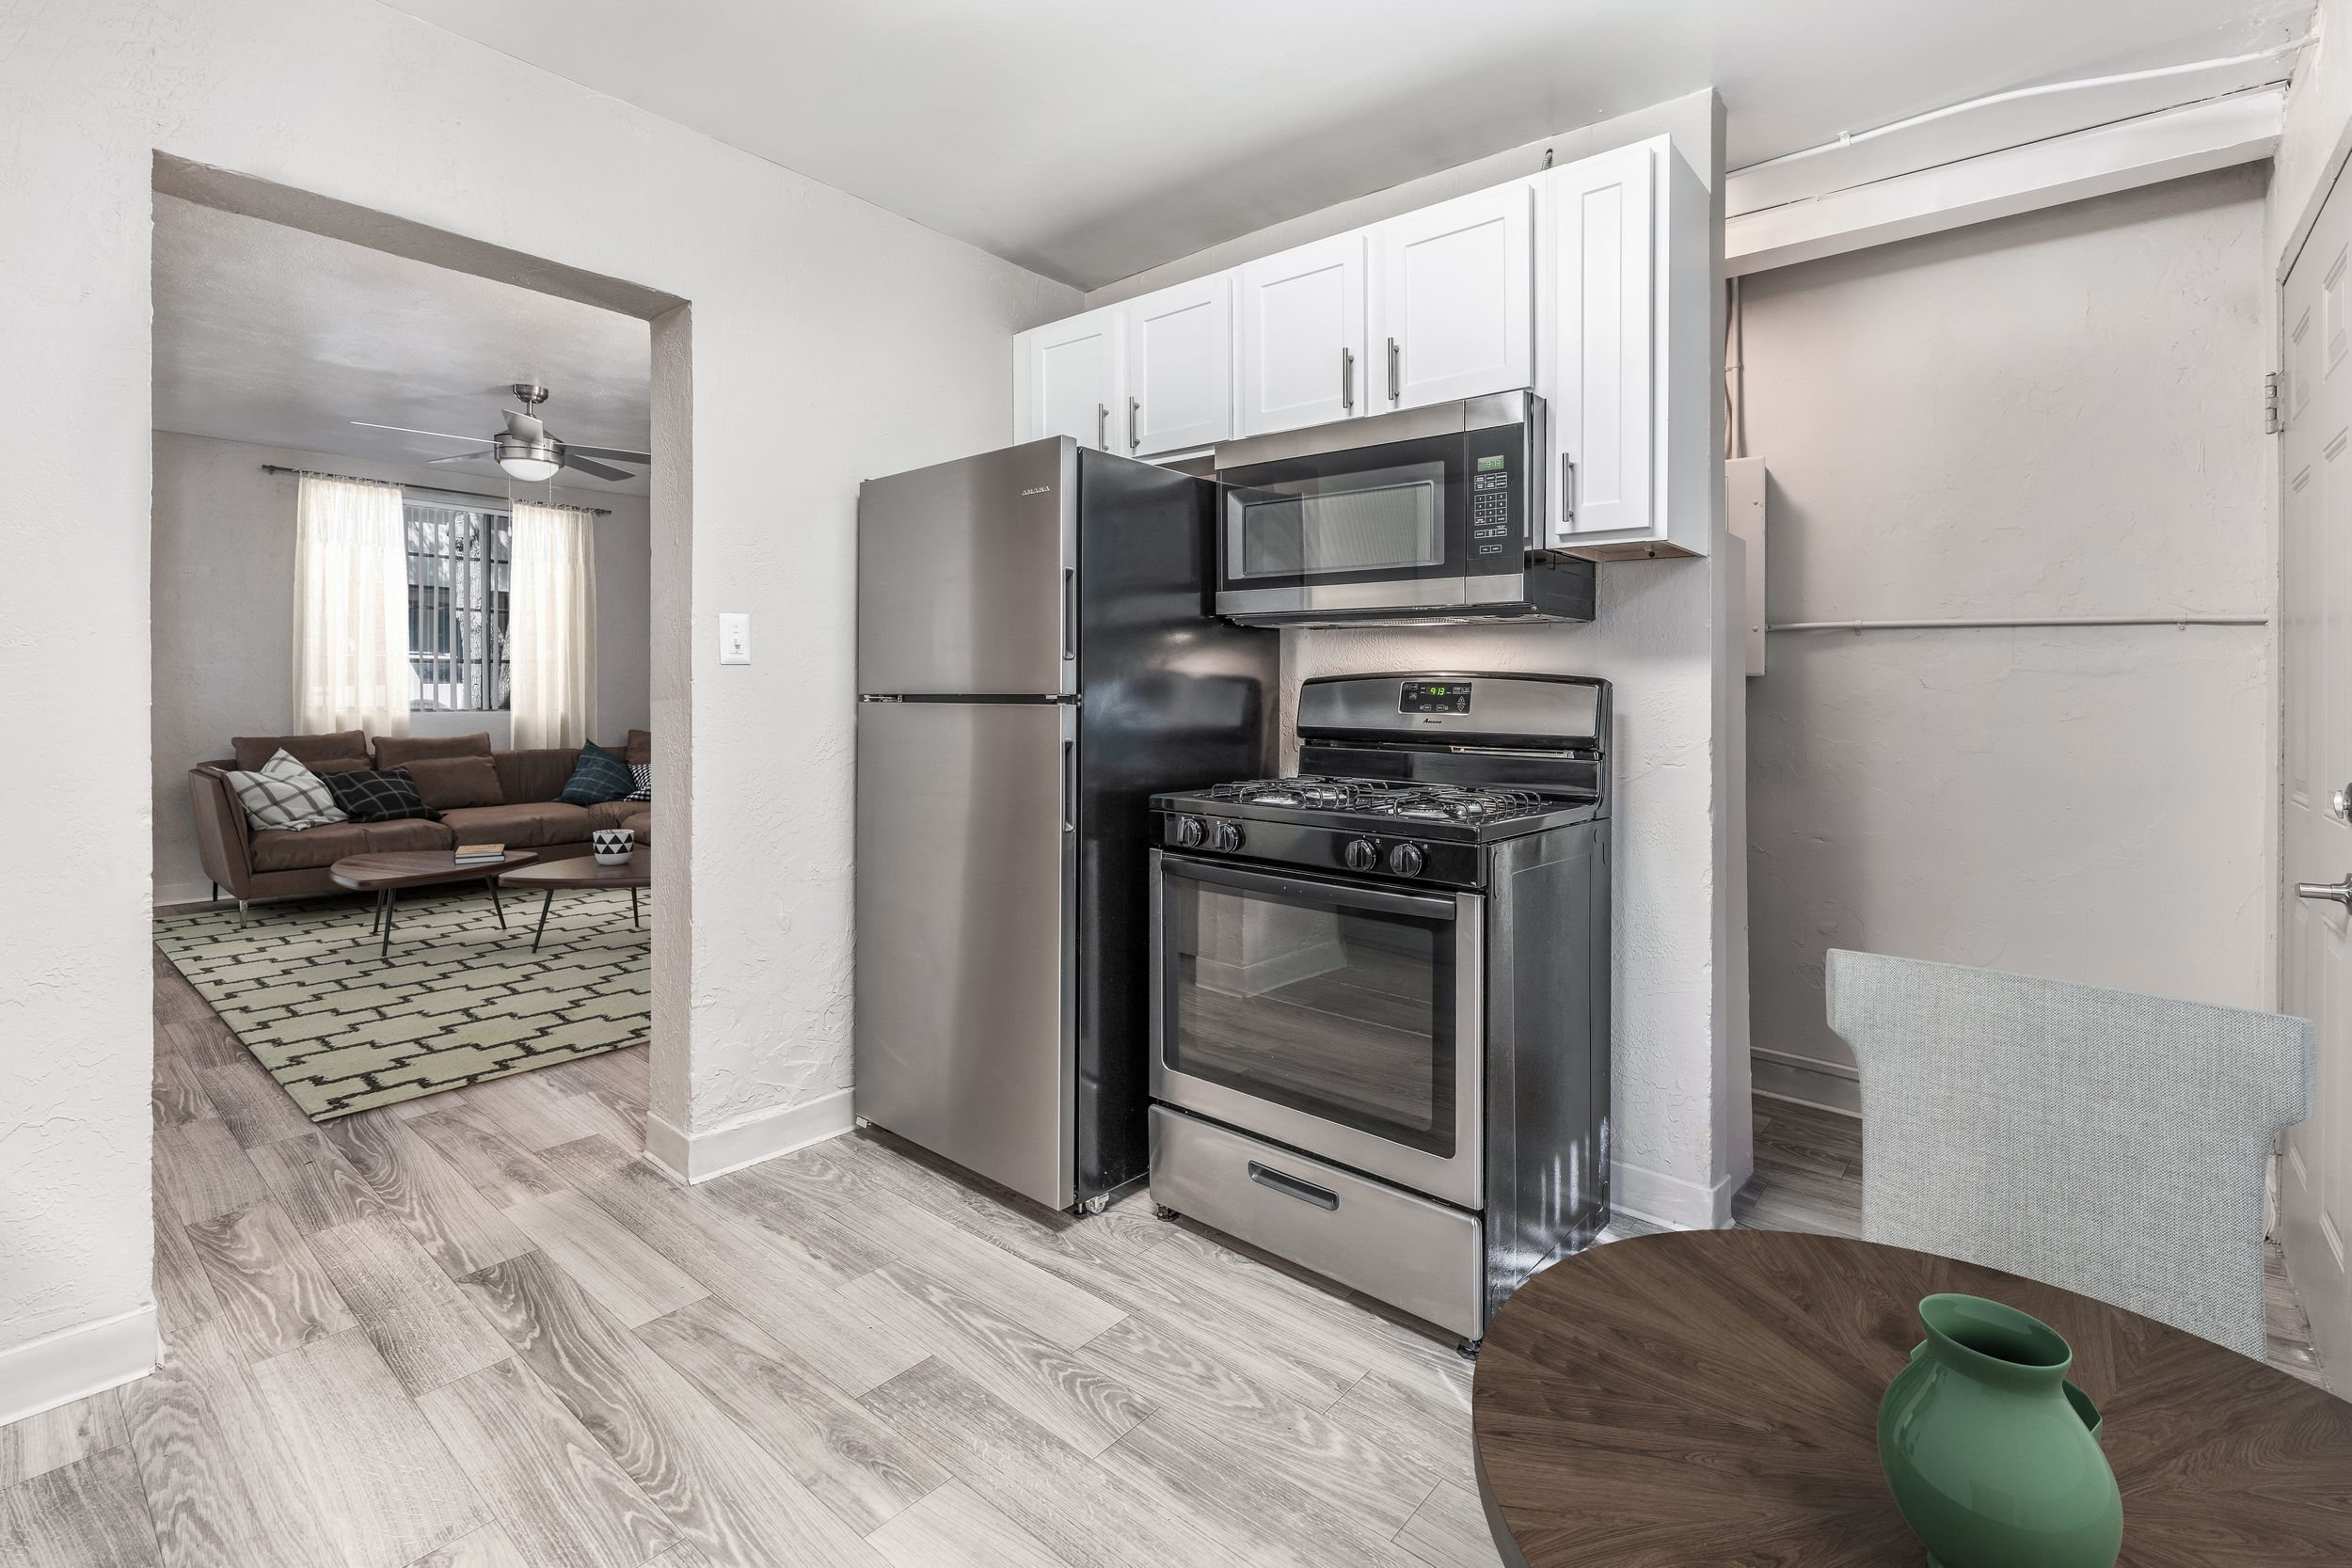 apartment entrance and kitchen